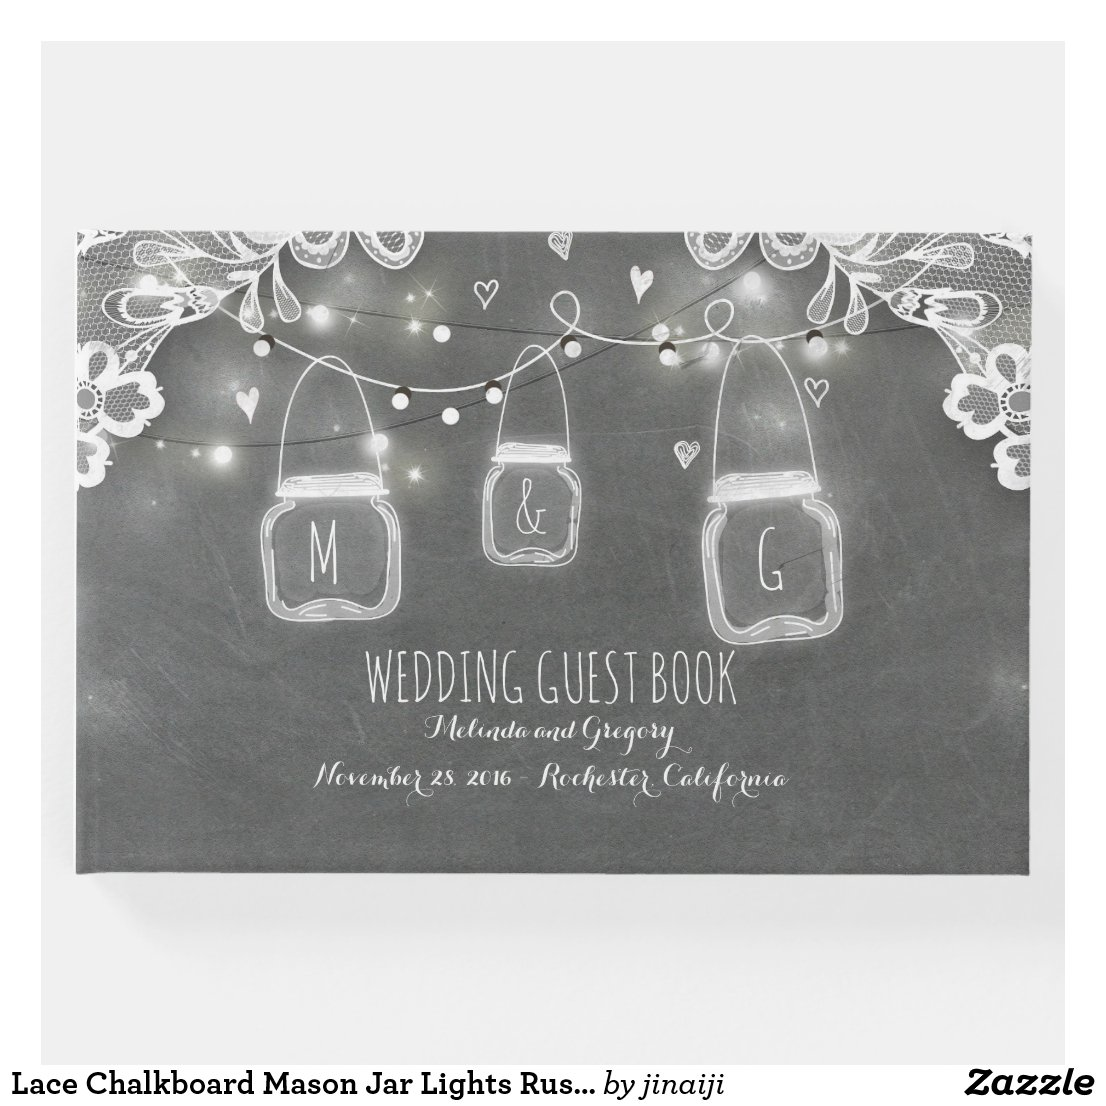 Lace Chalkboard Mason Jar Lights Rustic Wedding Guest Book